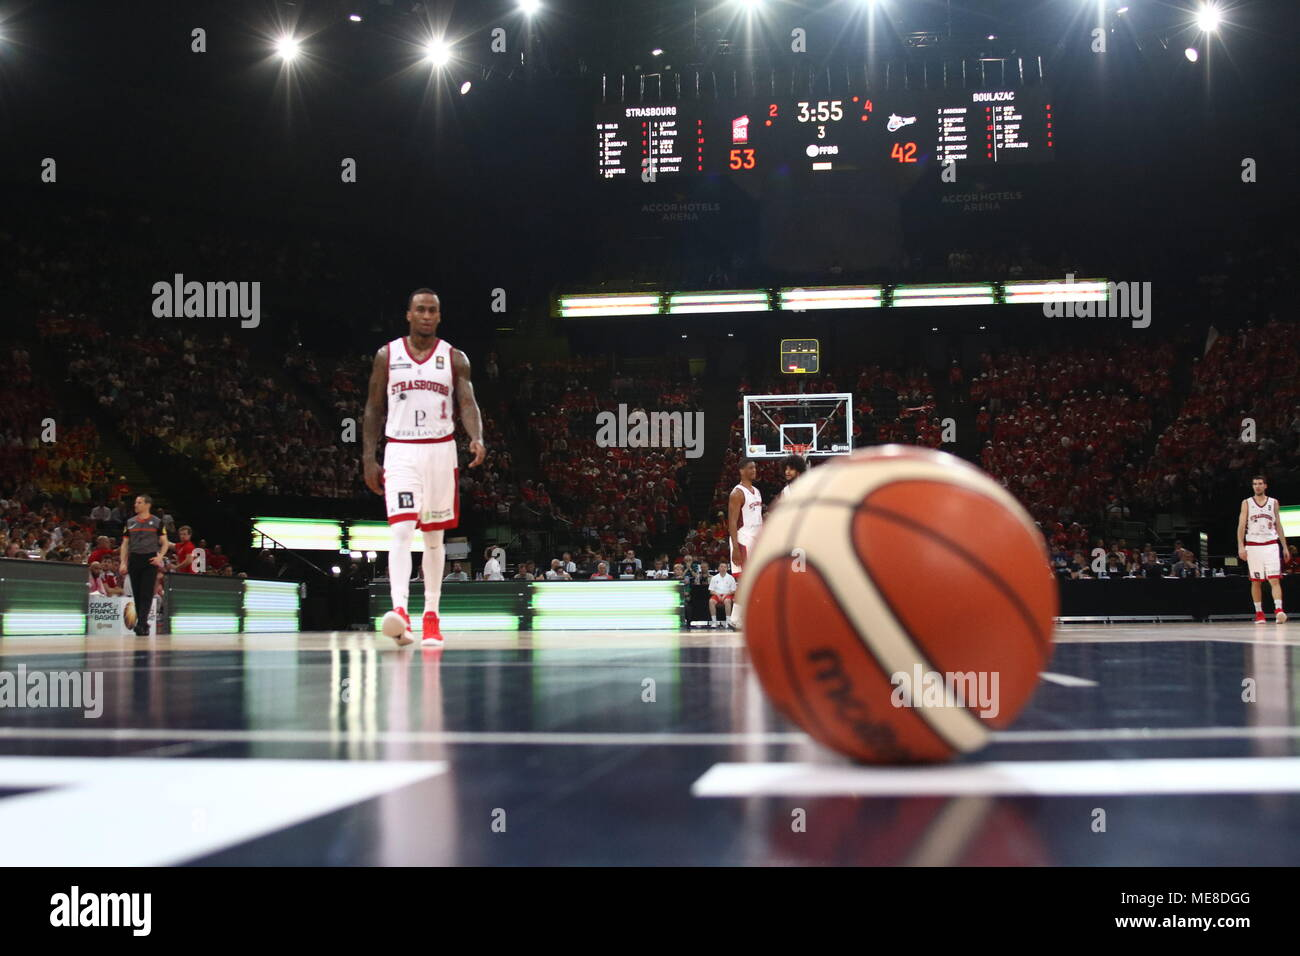 Strasbourg, France. 21st Apr, 2018. Dee Bost seen during the 'French Cup' match between SIG Strasbourg and Boulazac Basket Dordogne.Final Score Credit: Elyxandro Cegarra/SOPA Images/ZUMA Wire/Alamy Live News - Stock Image